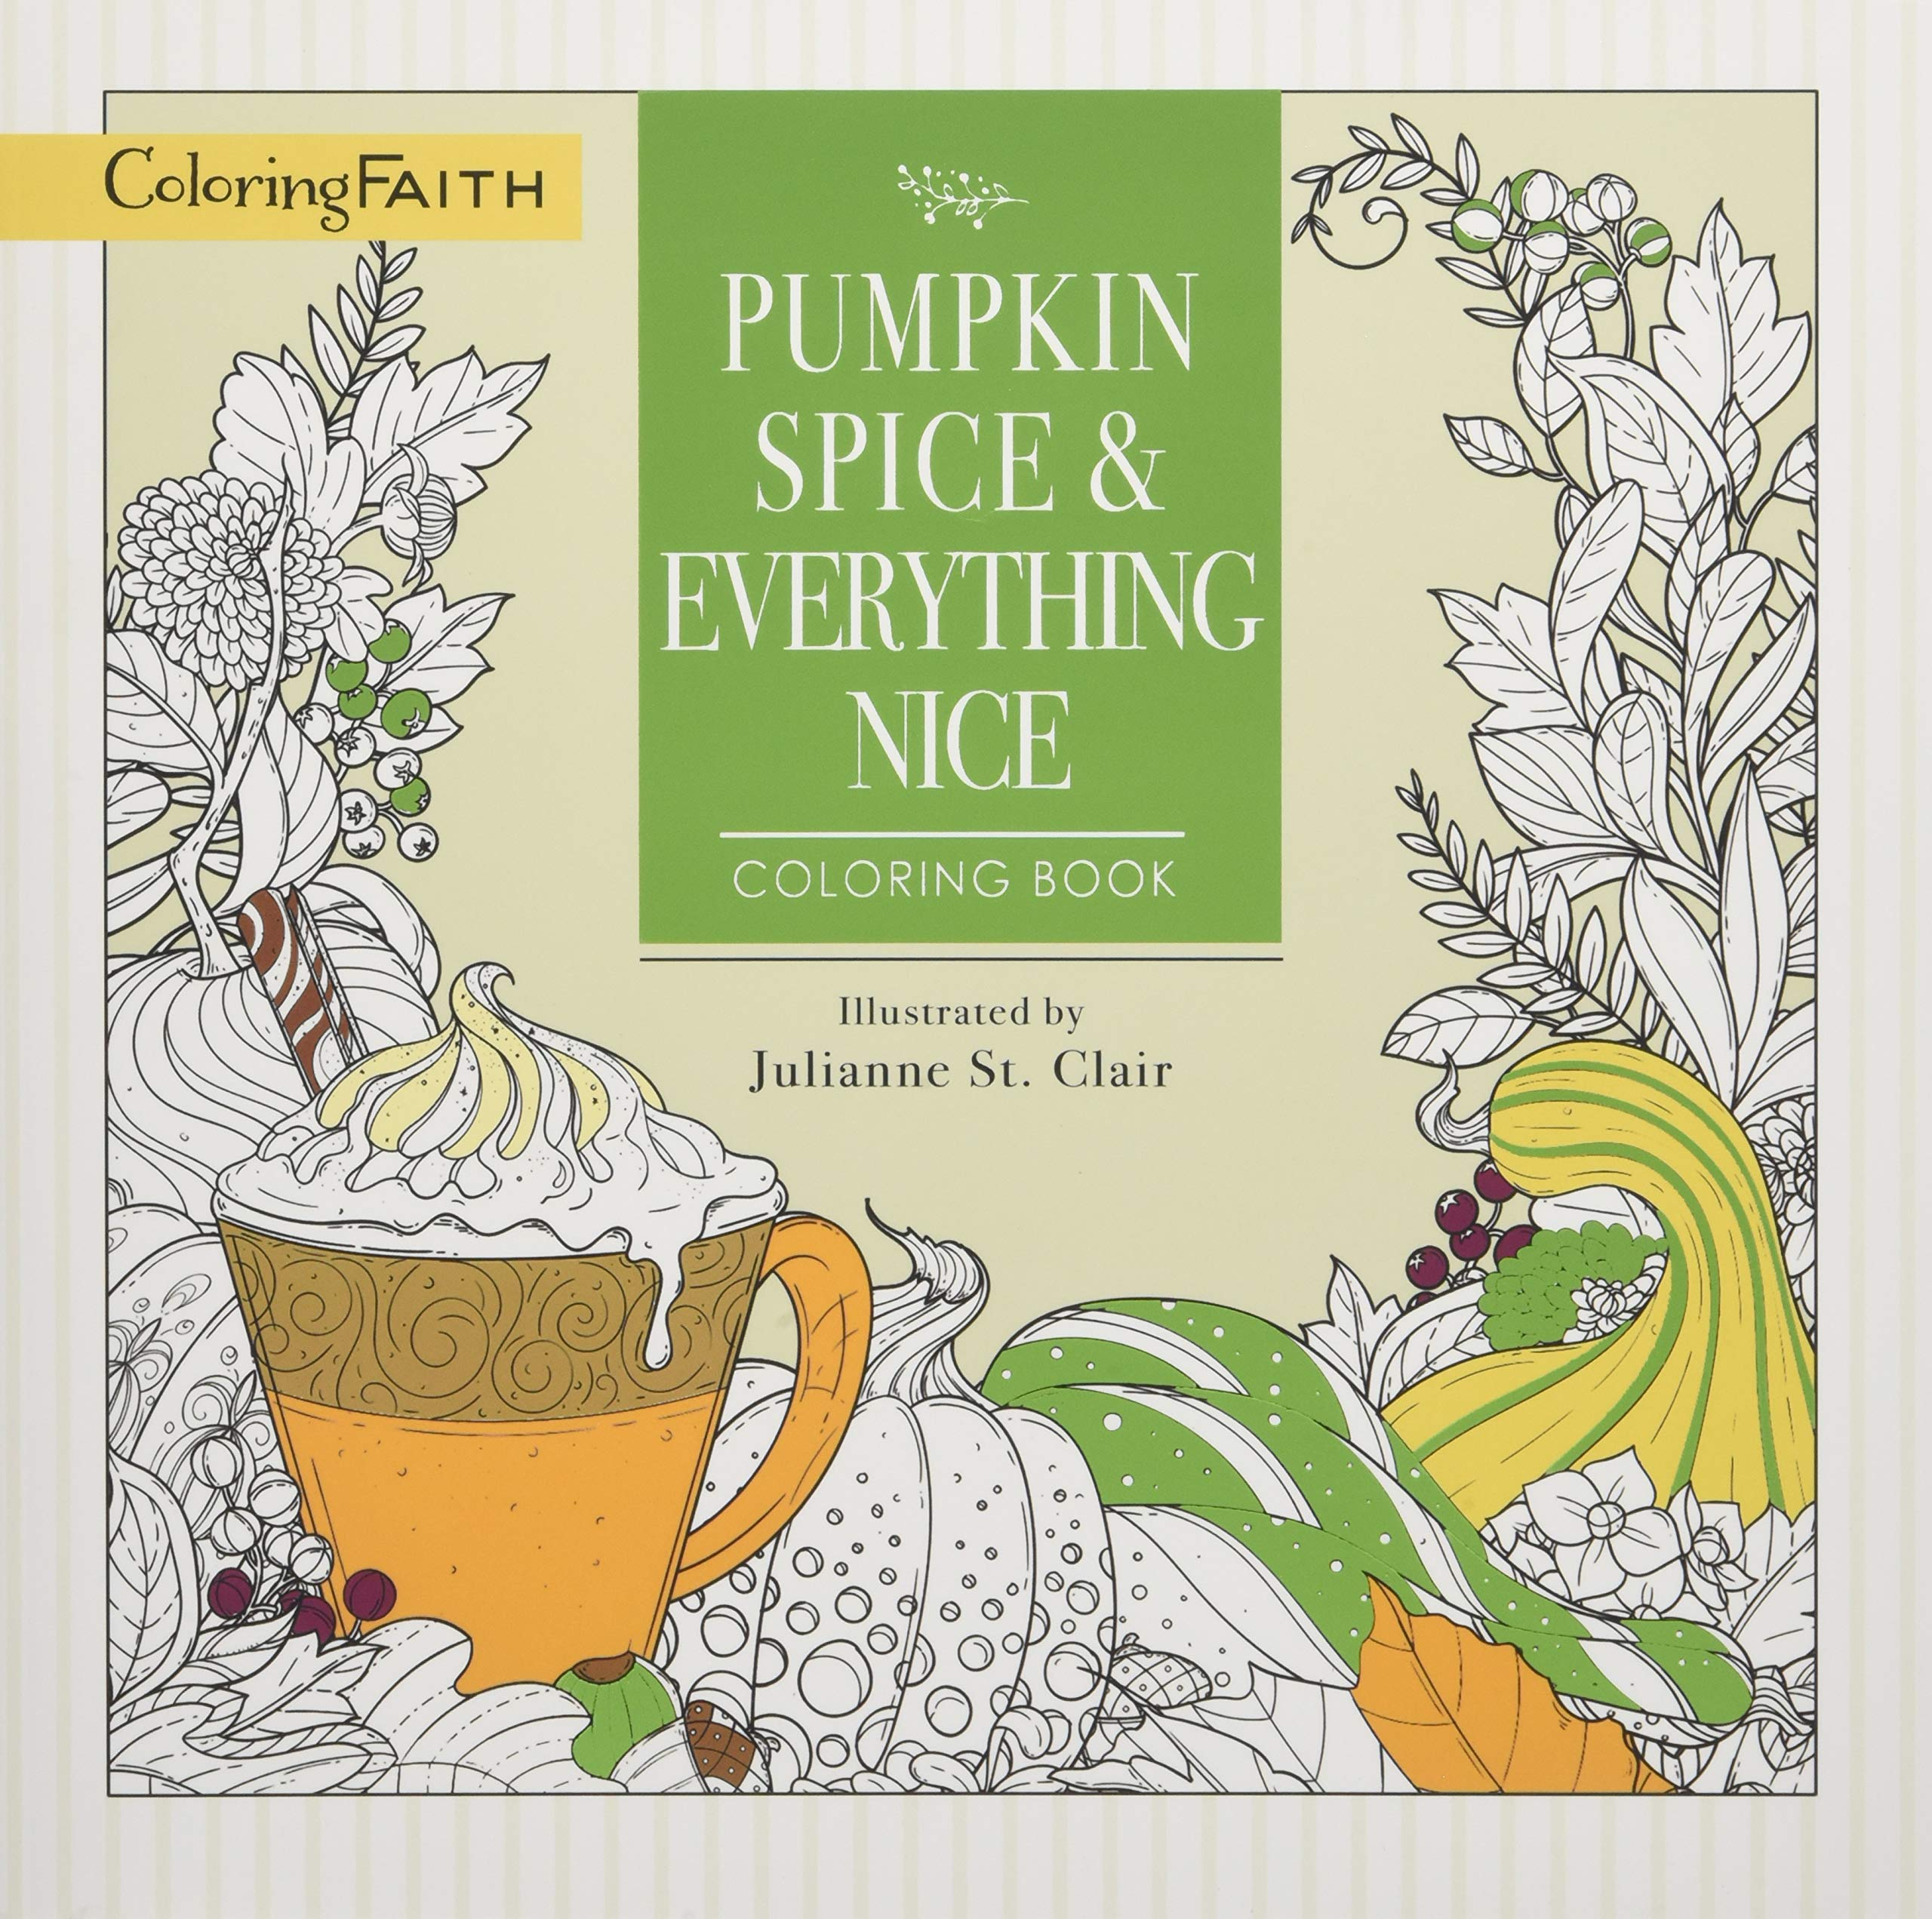 Amazon.com: Pumpkin Spice and Everything Nice Coloring Book ...